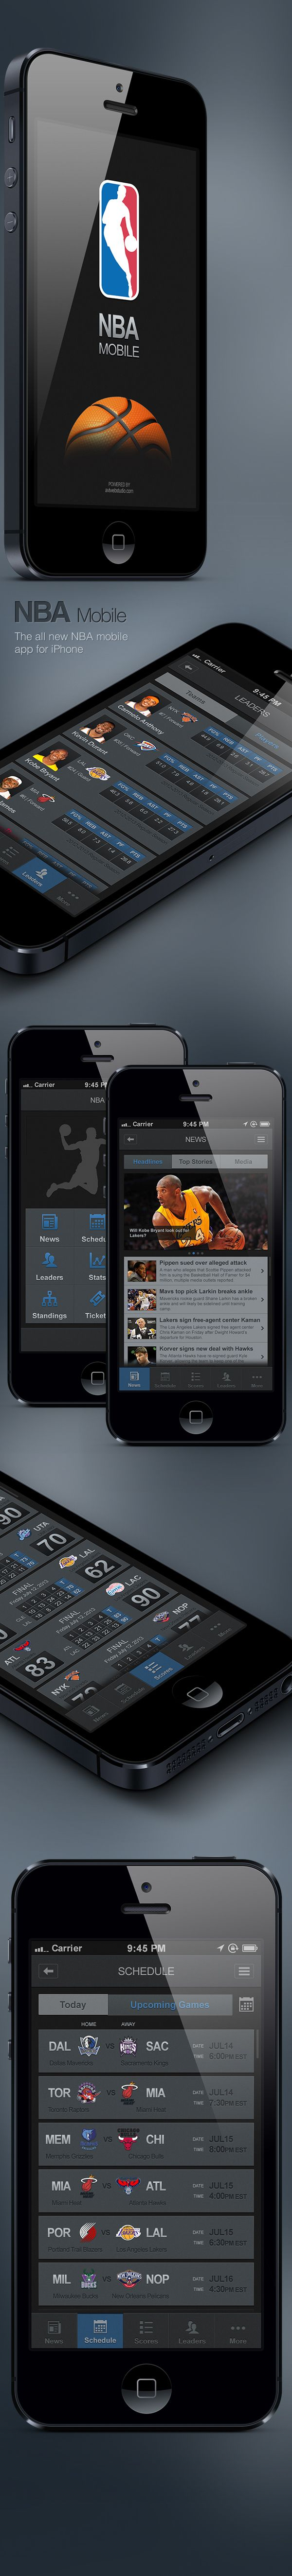 NBA Mobile App for iPhone by Alex V. Tarloyan, via Behance